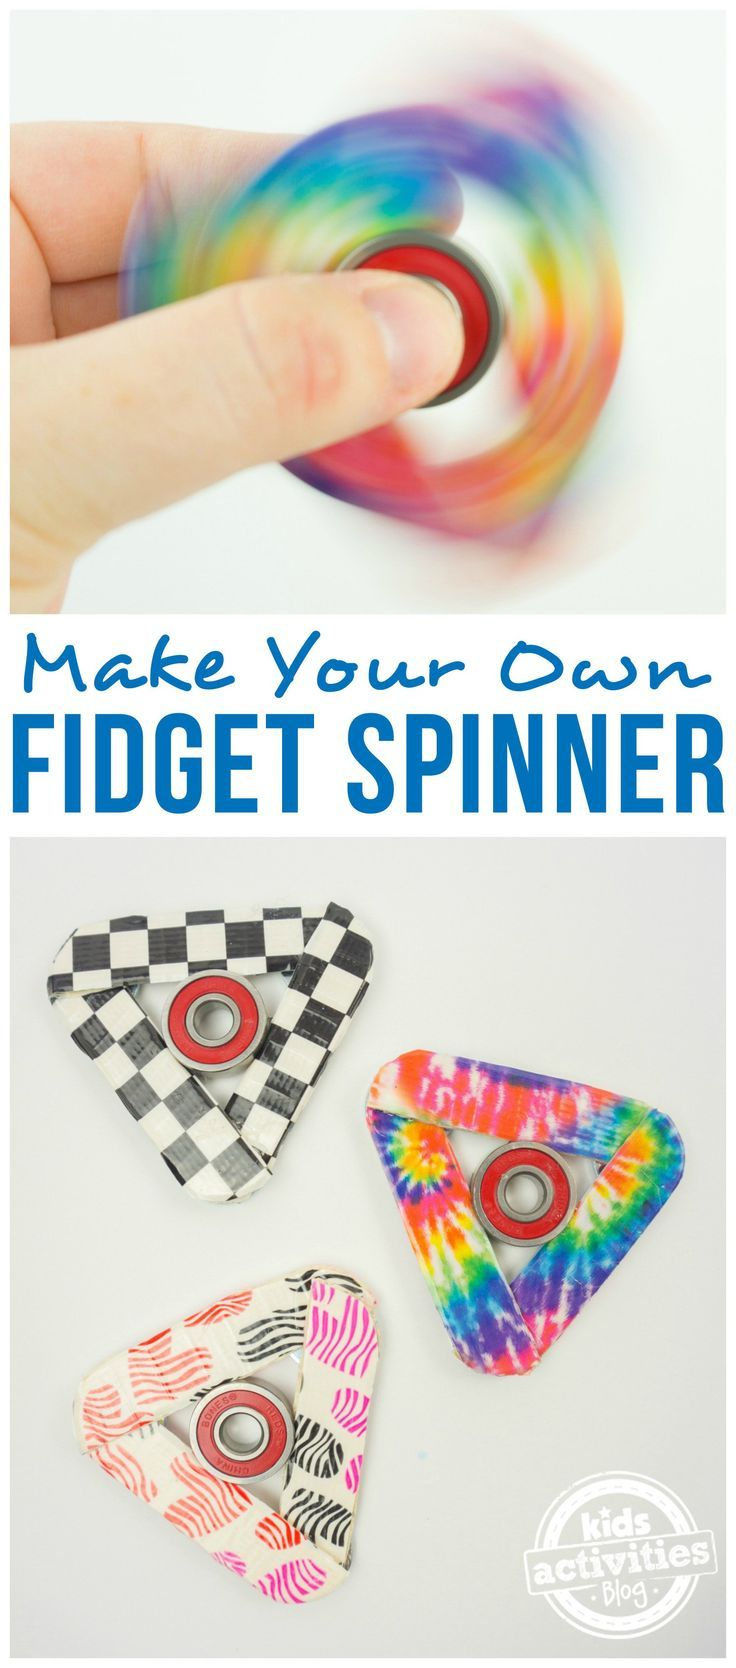 How To Make A Fidget Spinner Kid CraftsEasy Crafts With KidsCraft